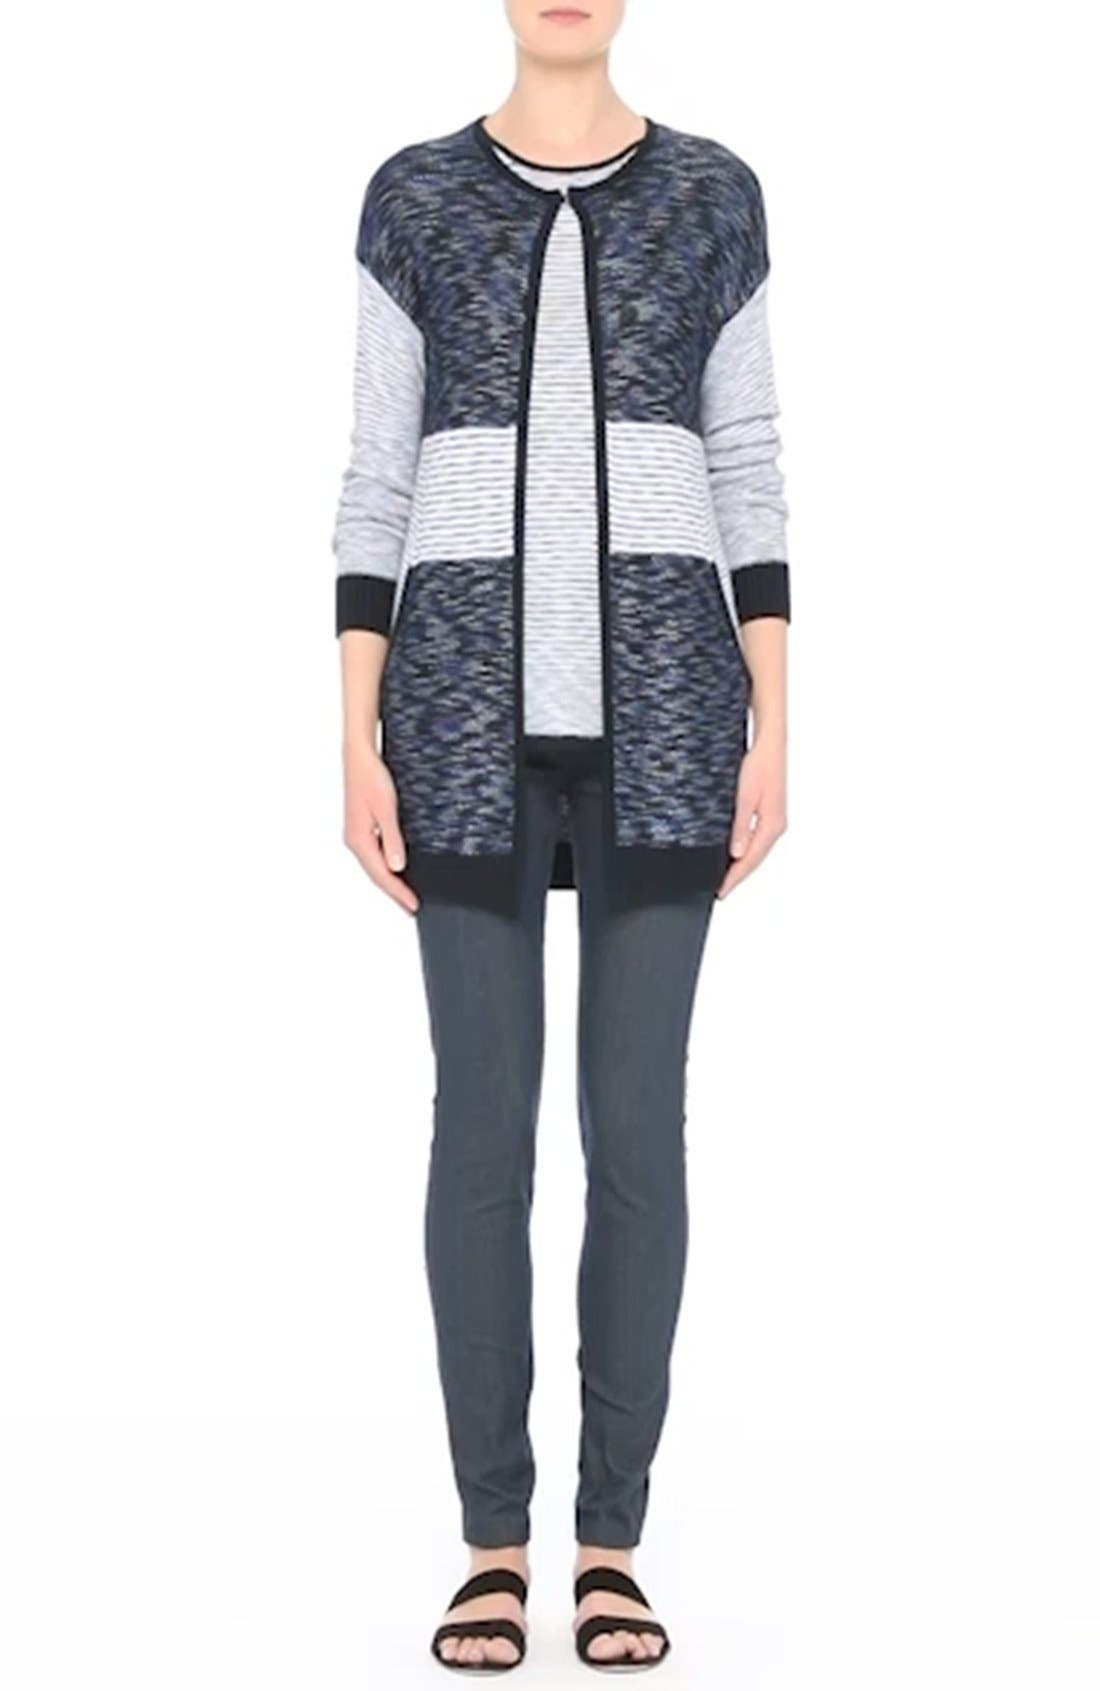 Chambray Effect Links Knit Cardigan,                             Alternate thumbnail 7, color,                             400